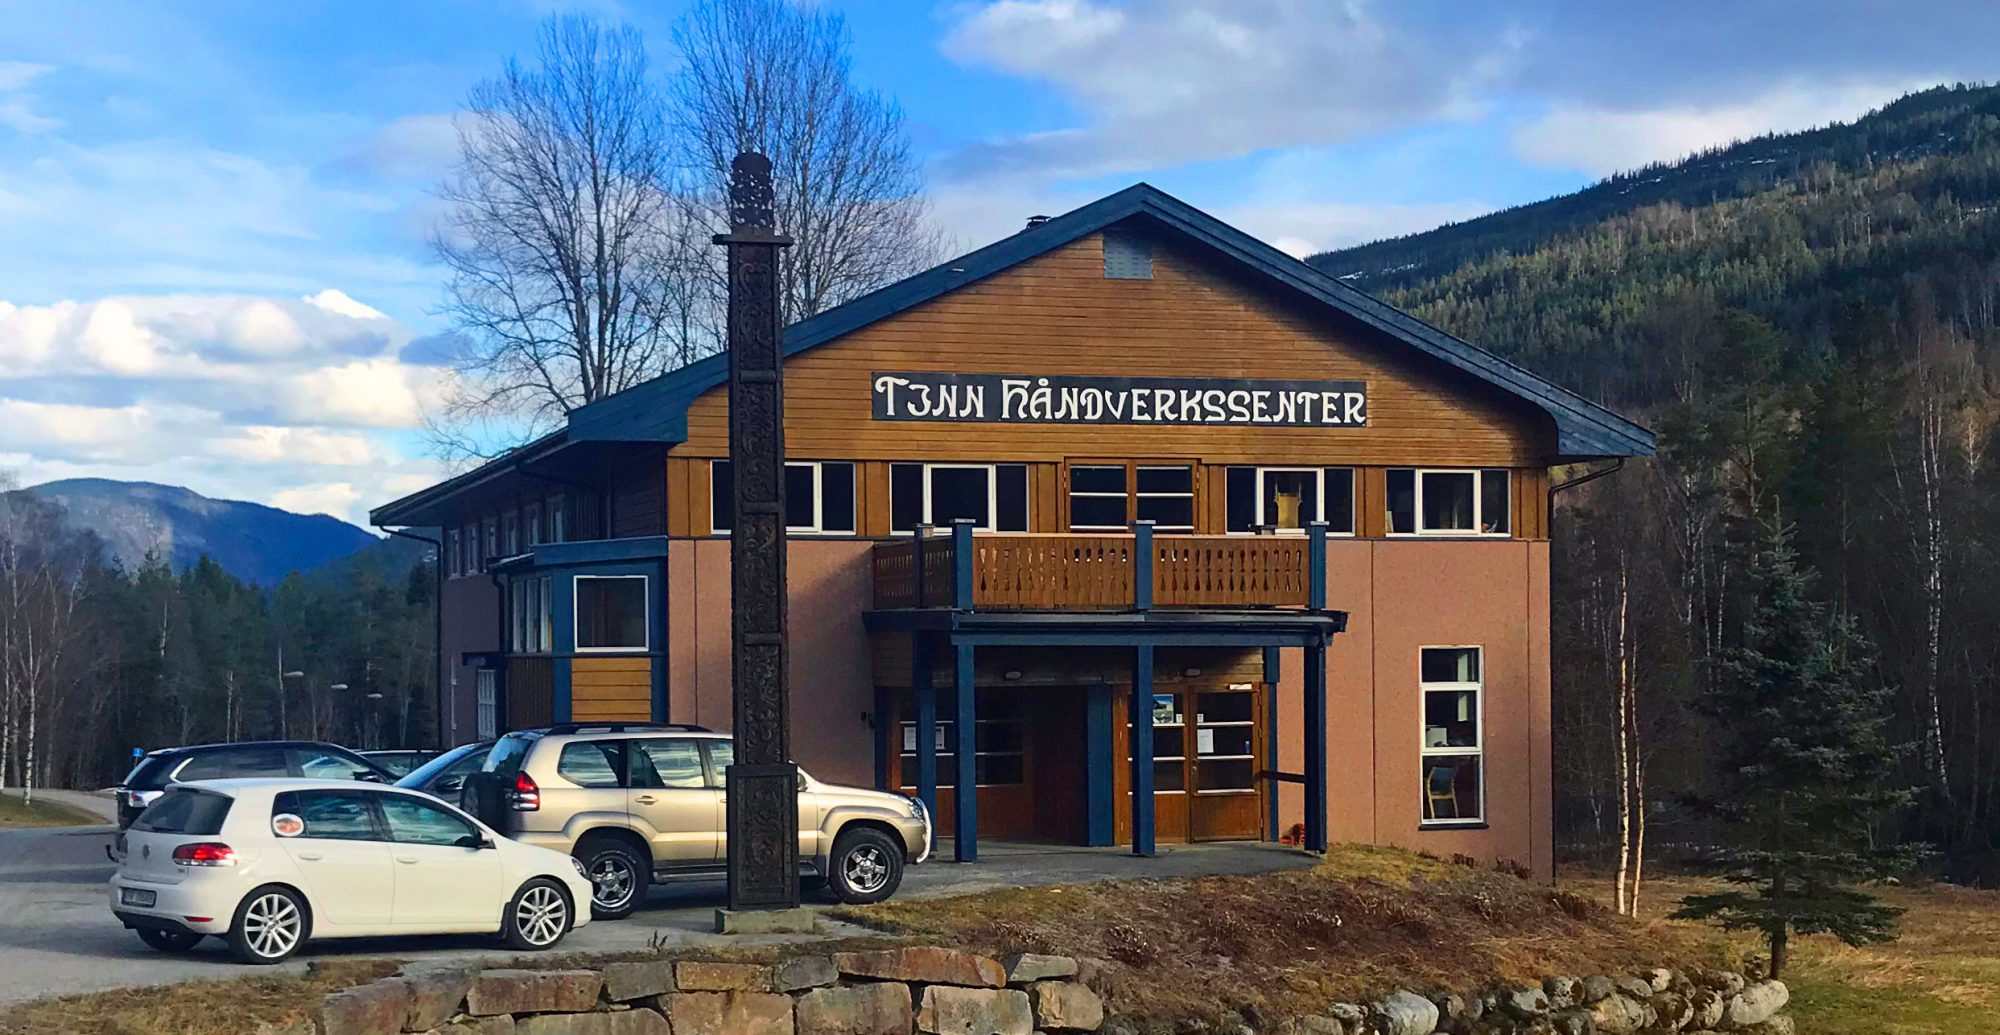 Tinn håndverkssenter AS